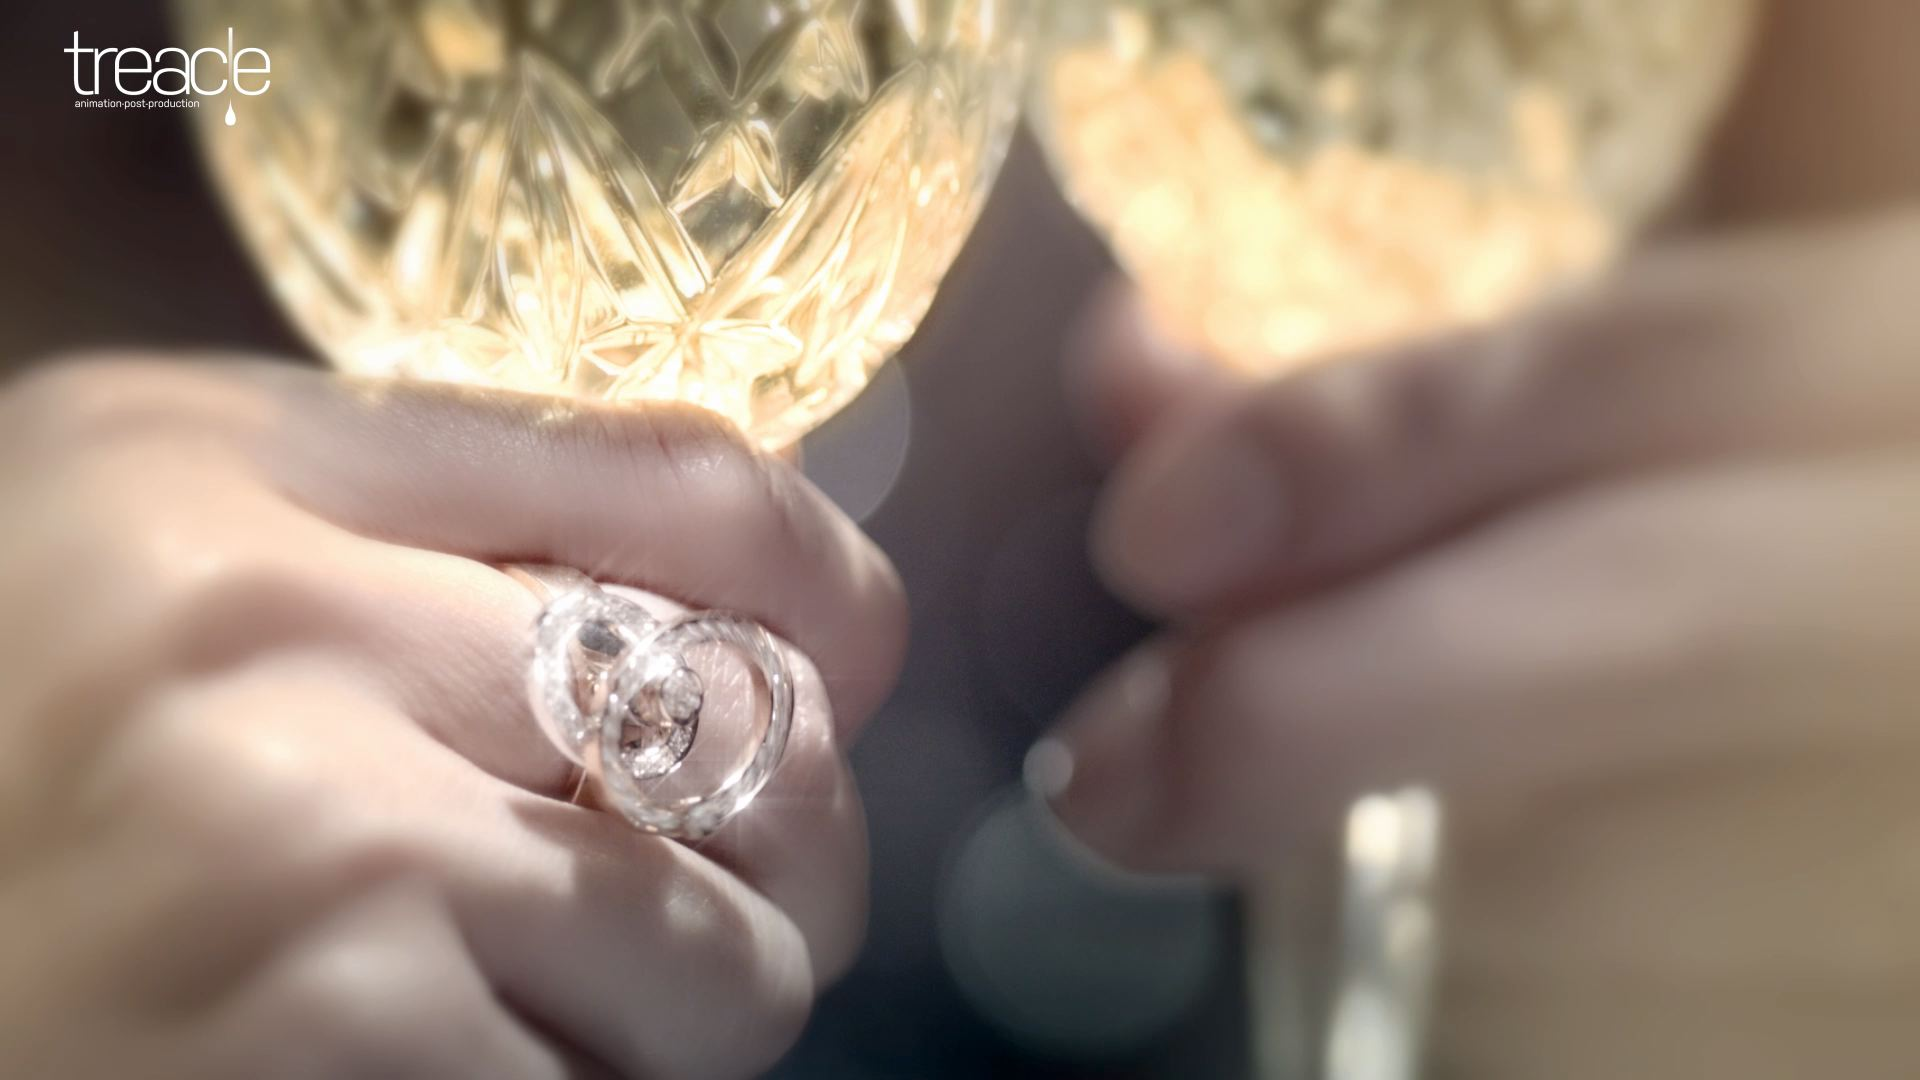 Close-up of a diamond ring on a woman's hand holding a champagne glass.